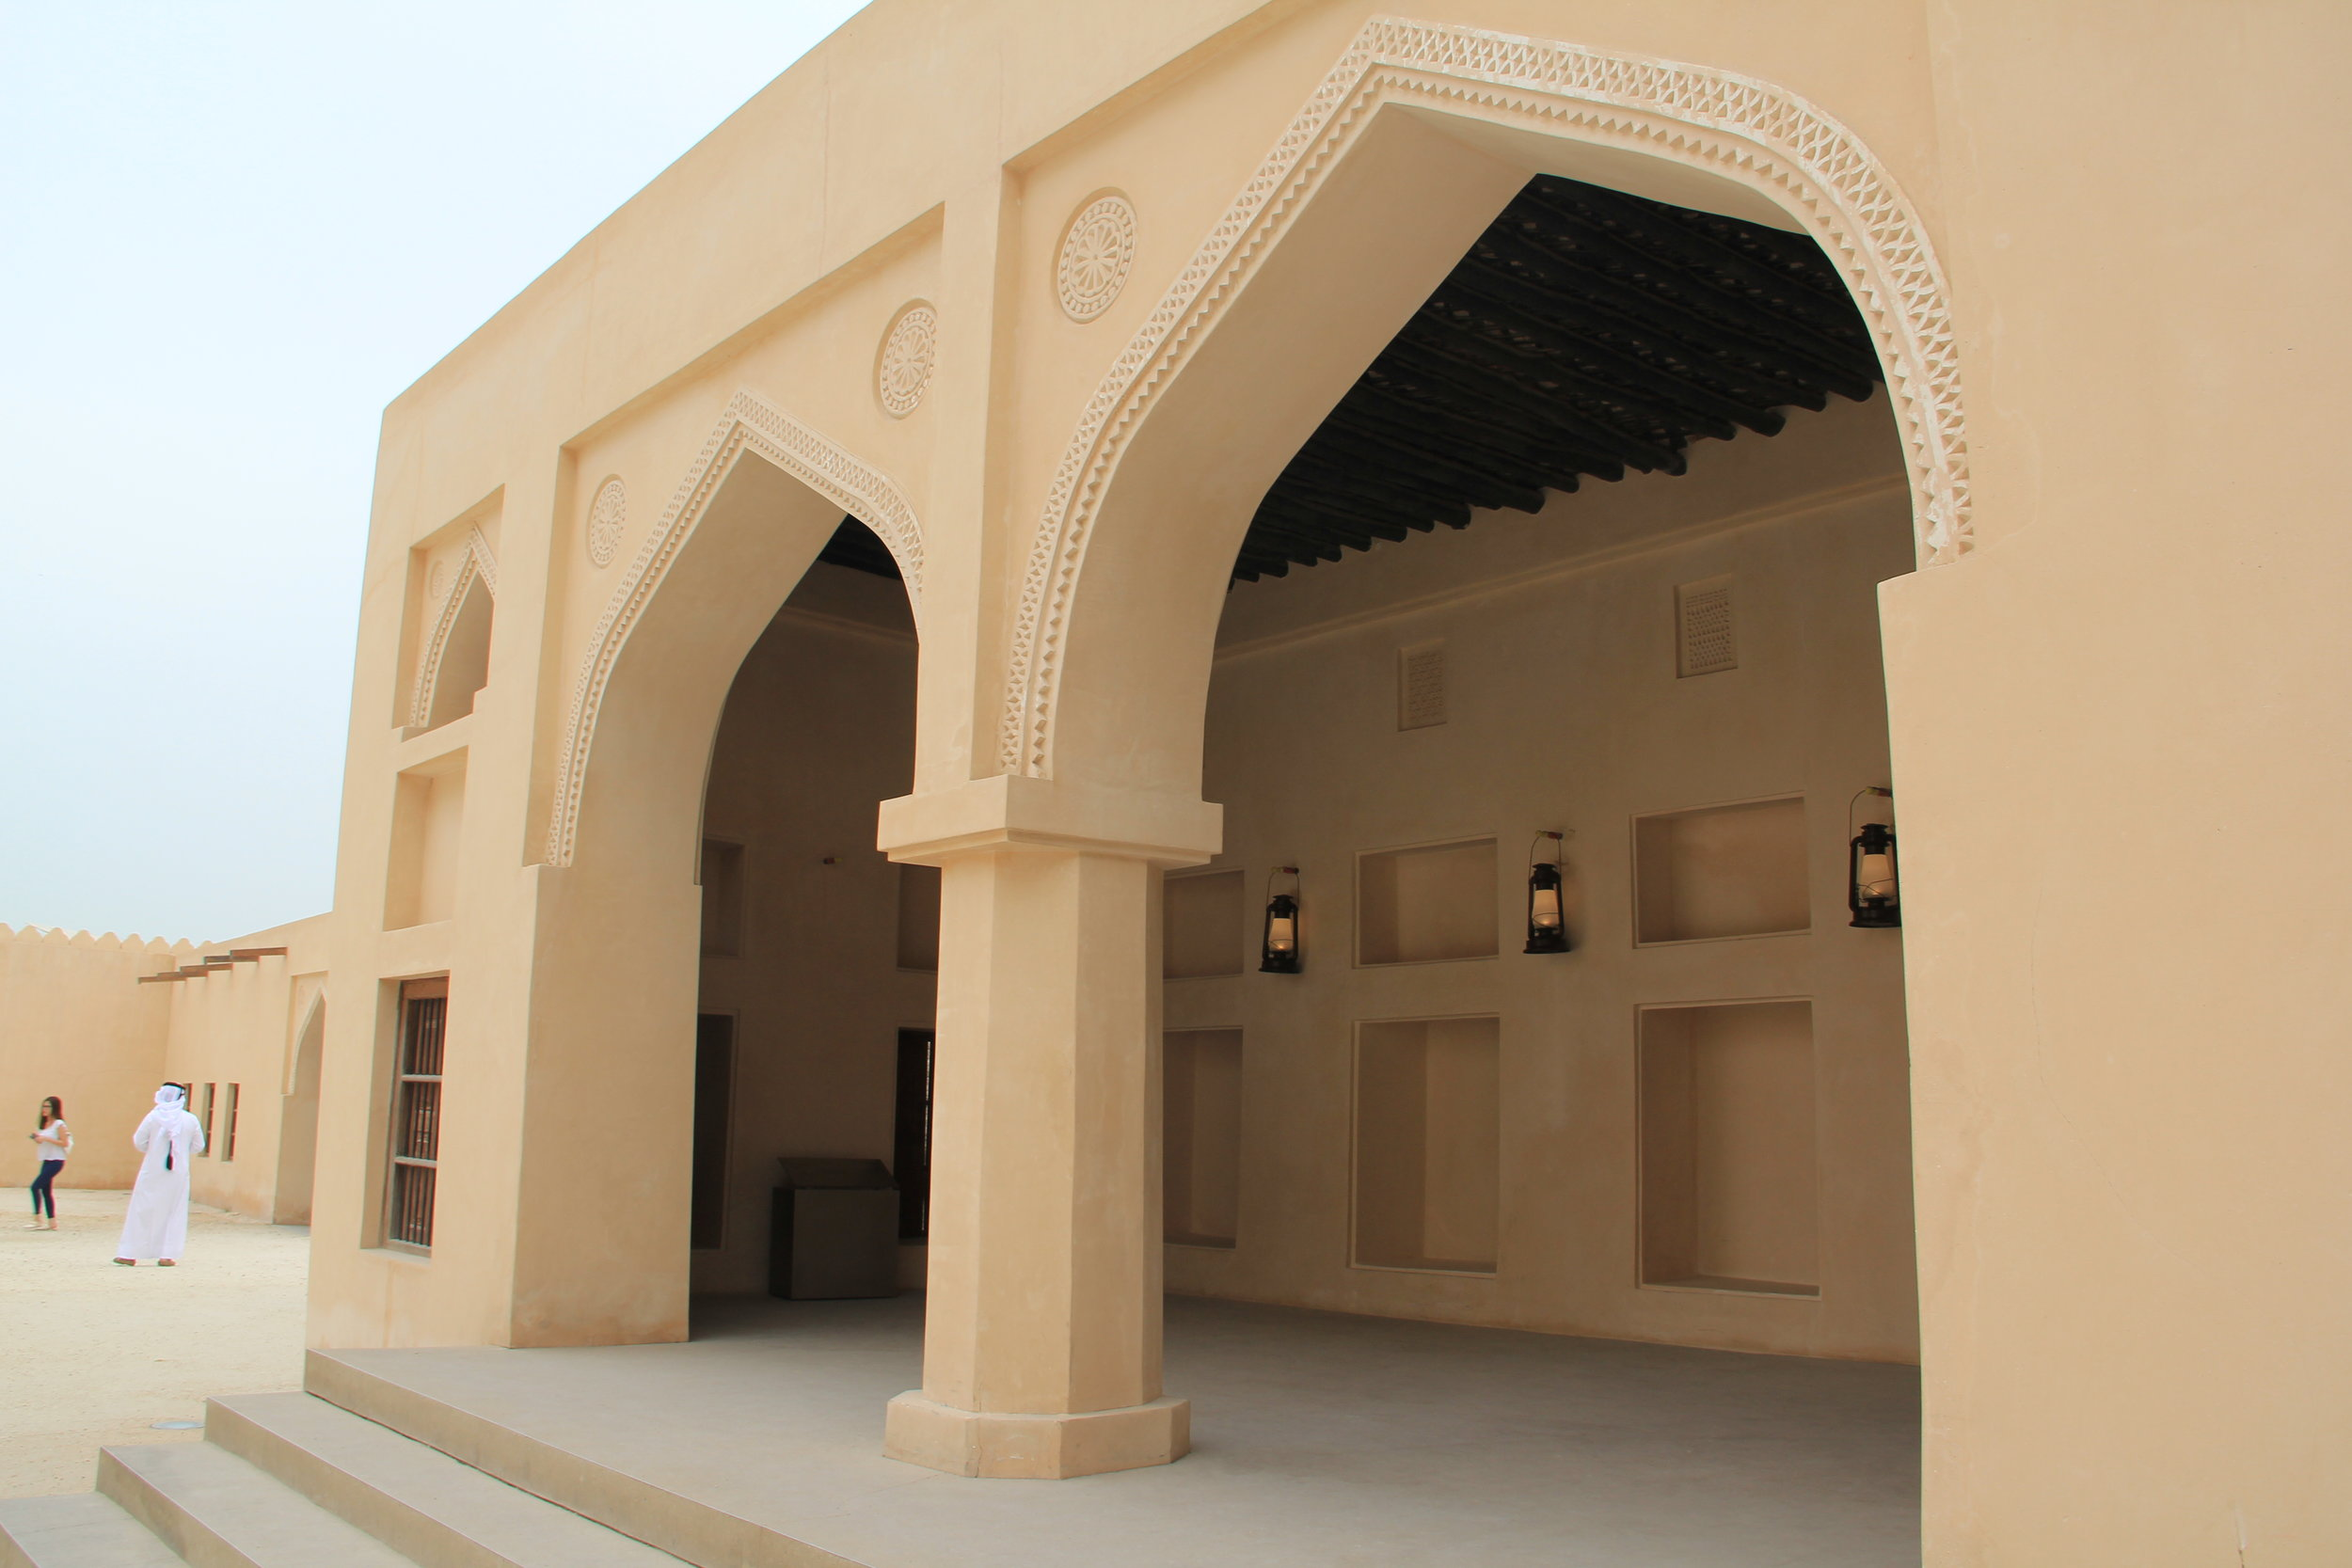 Old Emir's palace. National Museum of Qatar, Doha, Qatar. Taken by Tyanna LC